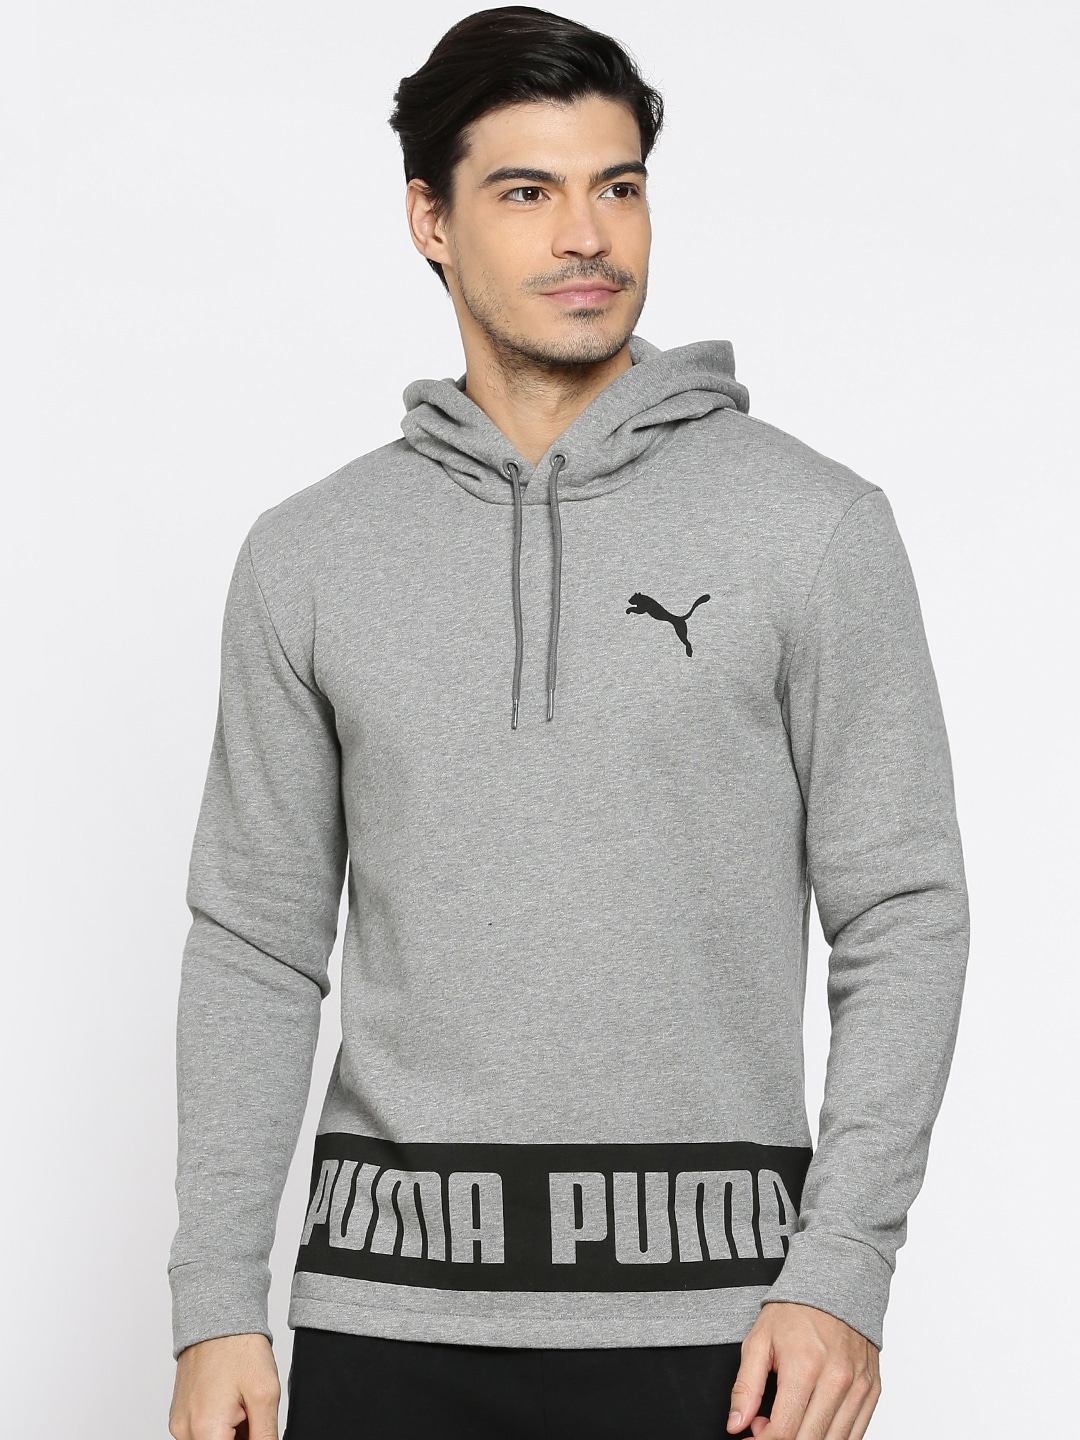 Buy Puma Grey Printed Rebel Hooded Men's Sweatshirt At Best Price